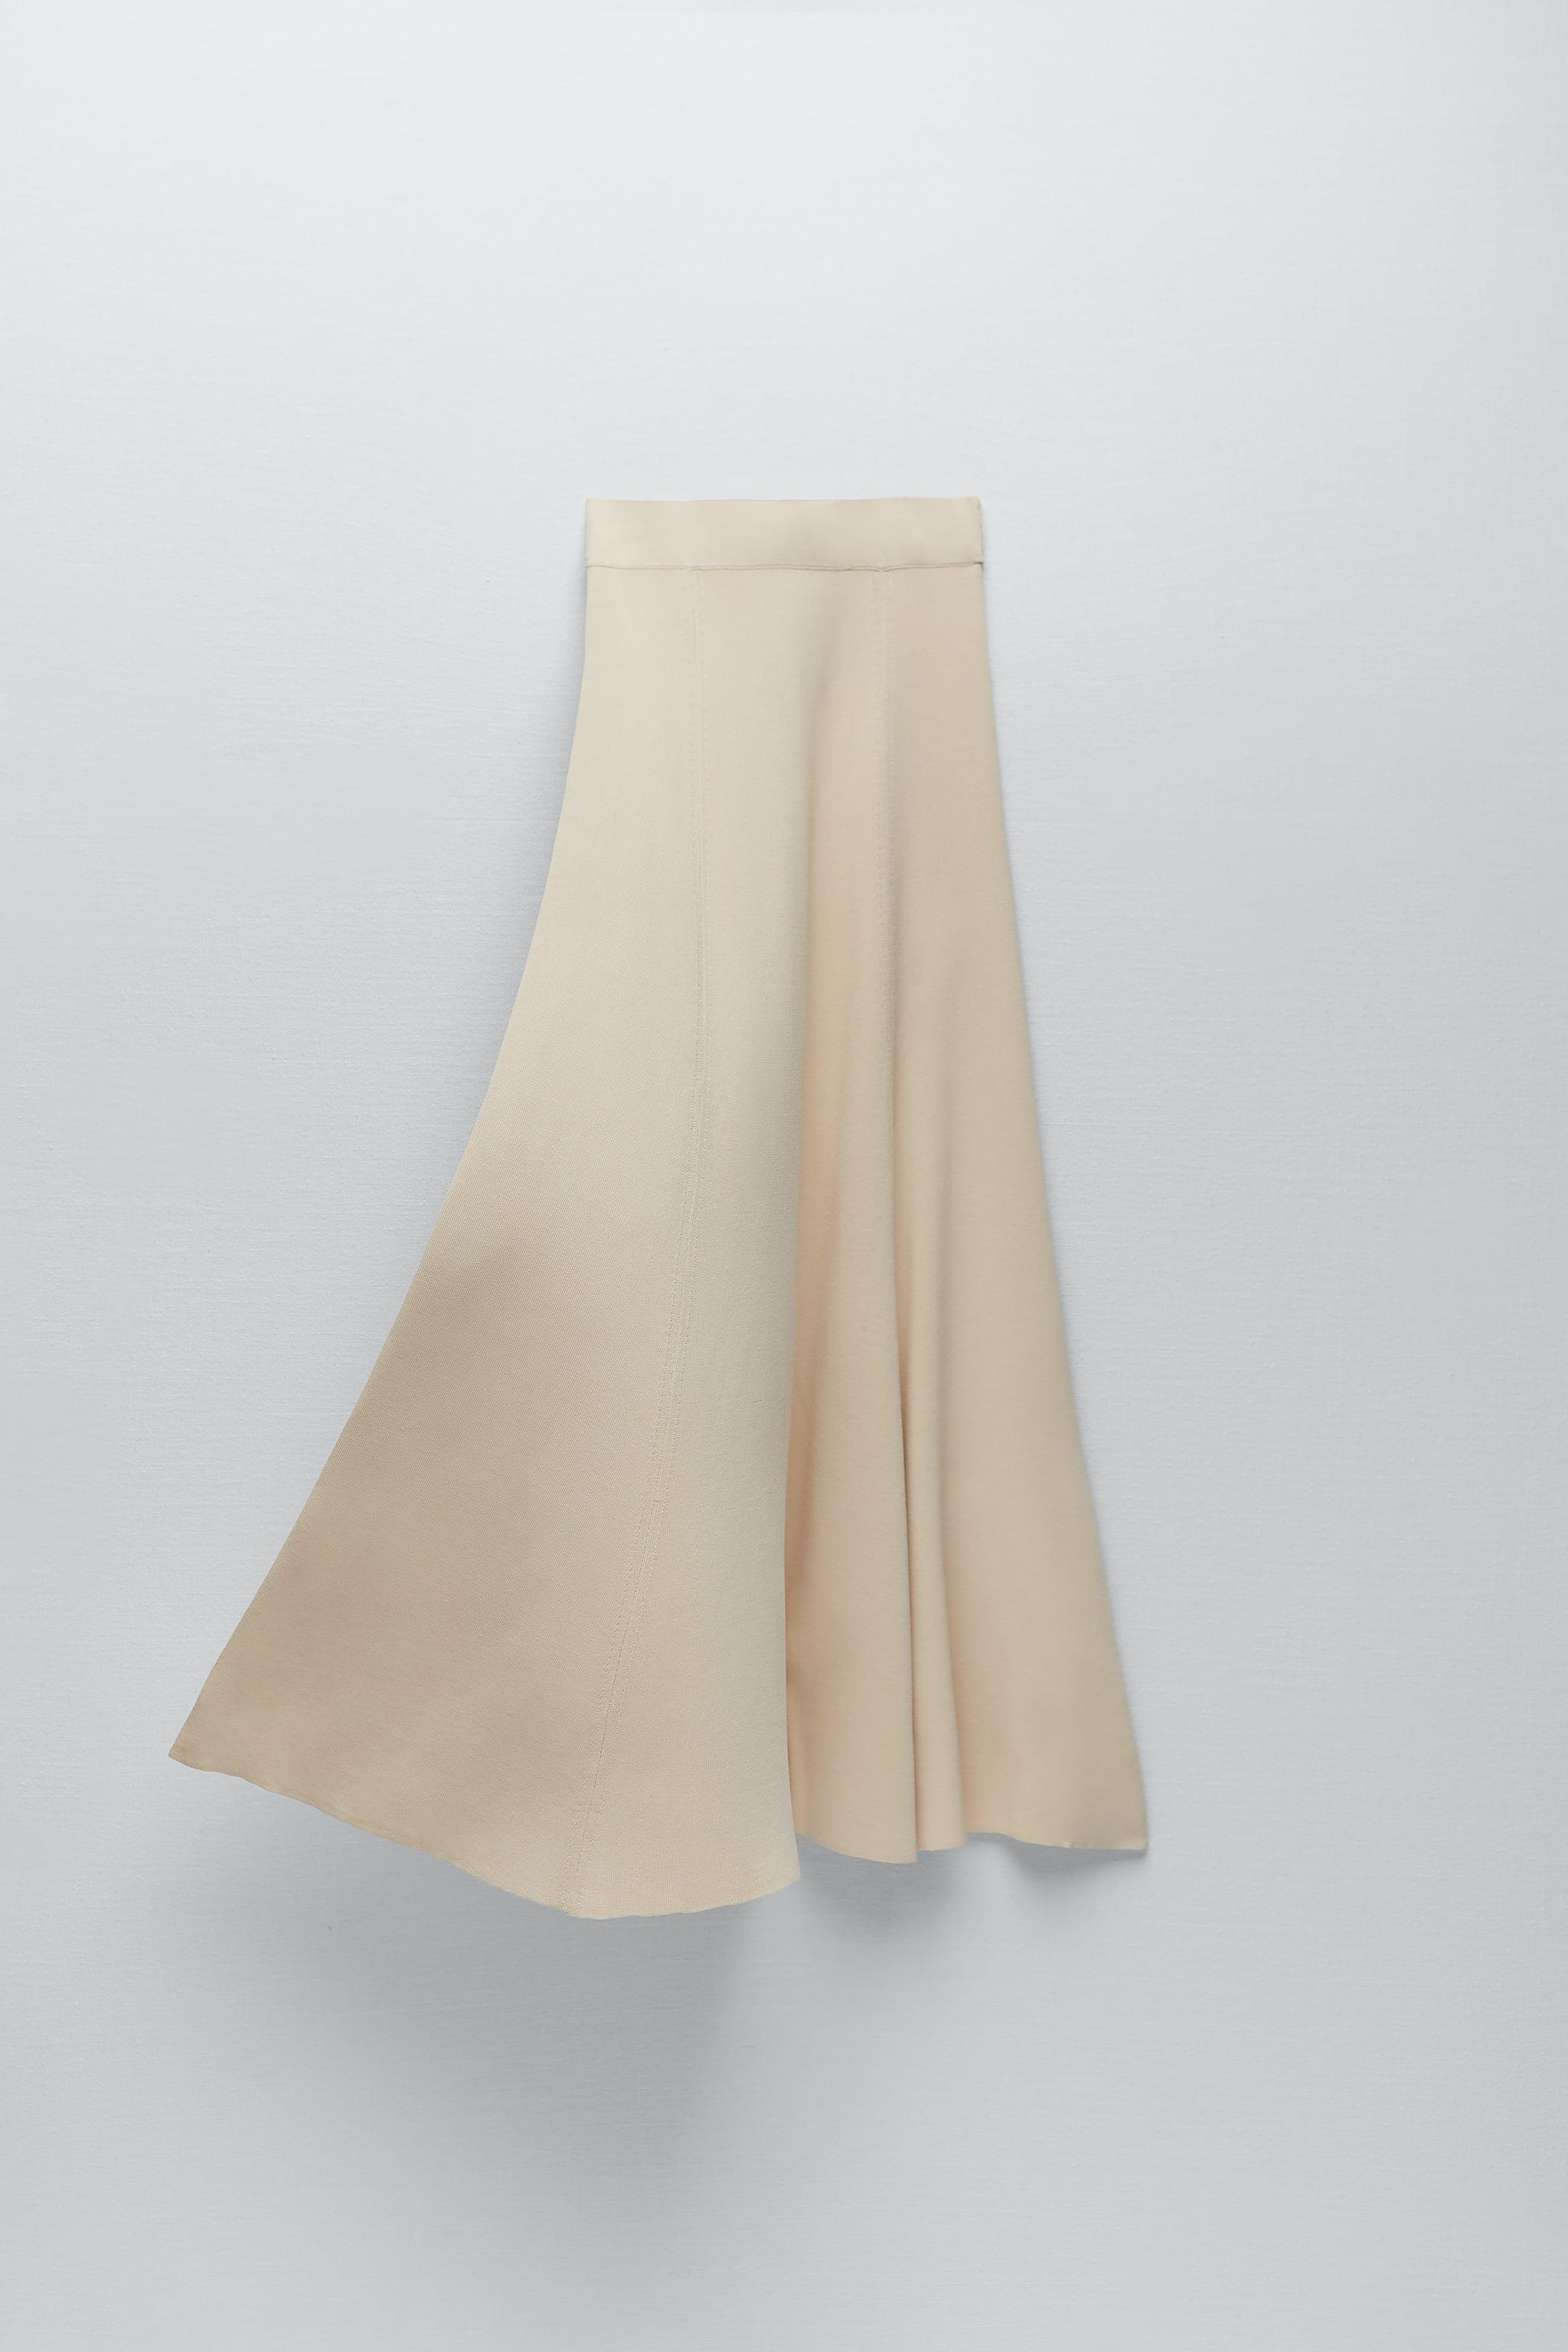 LONG KNIT SKIRT LIMITED EDITION 4